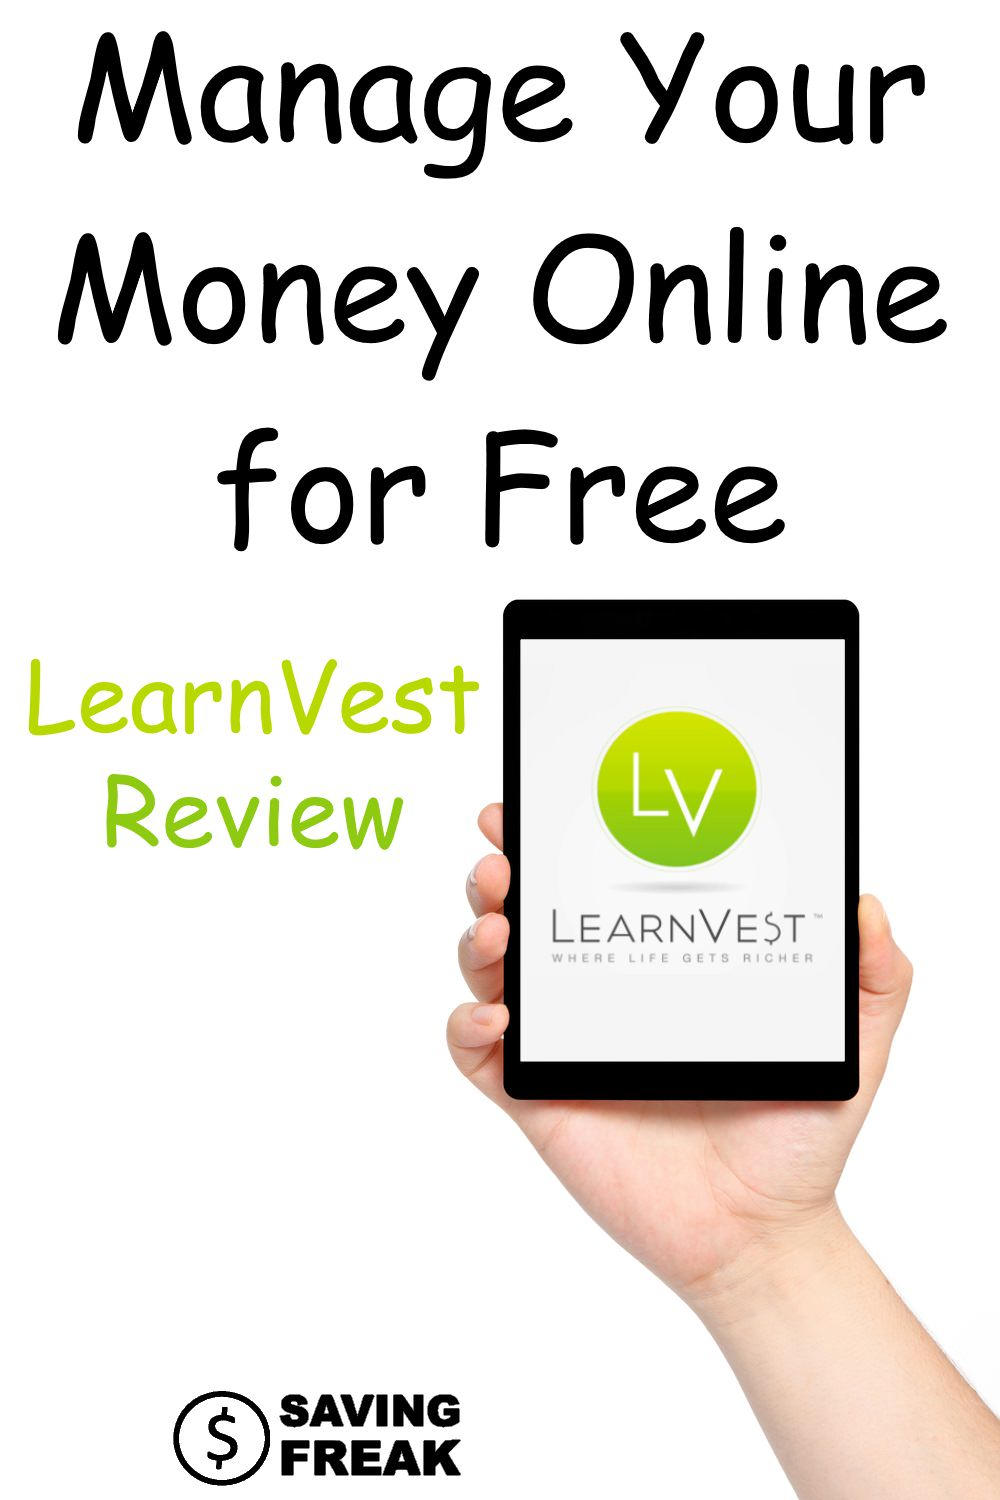 Use this LearnVest review to understand how the program can help you organize and manage your finances.